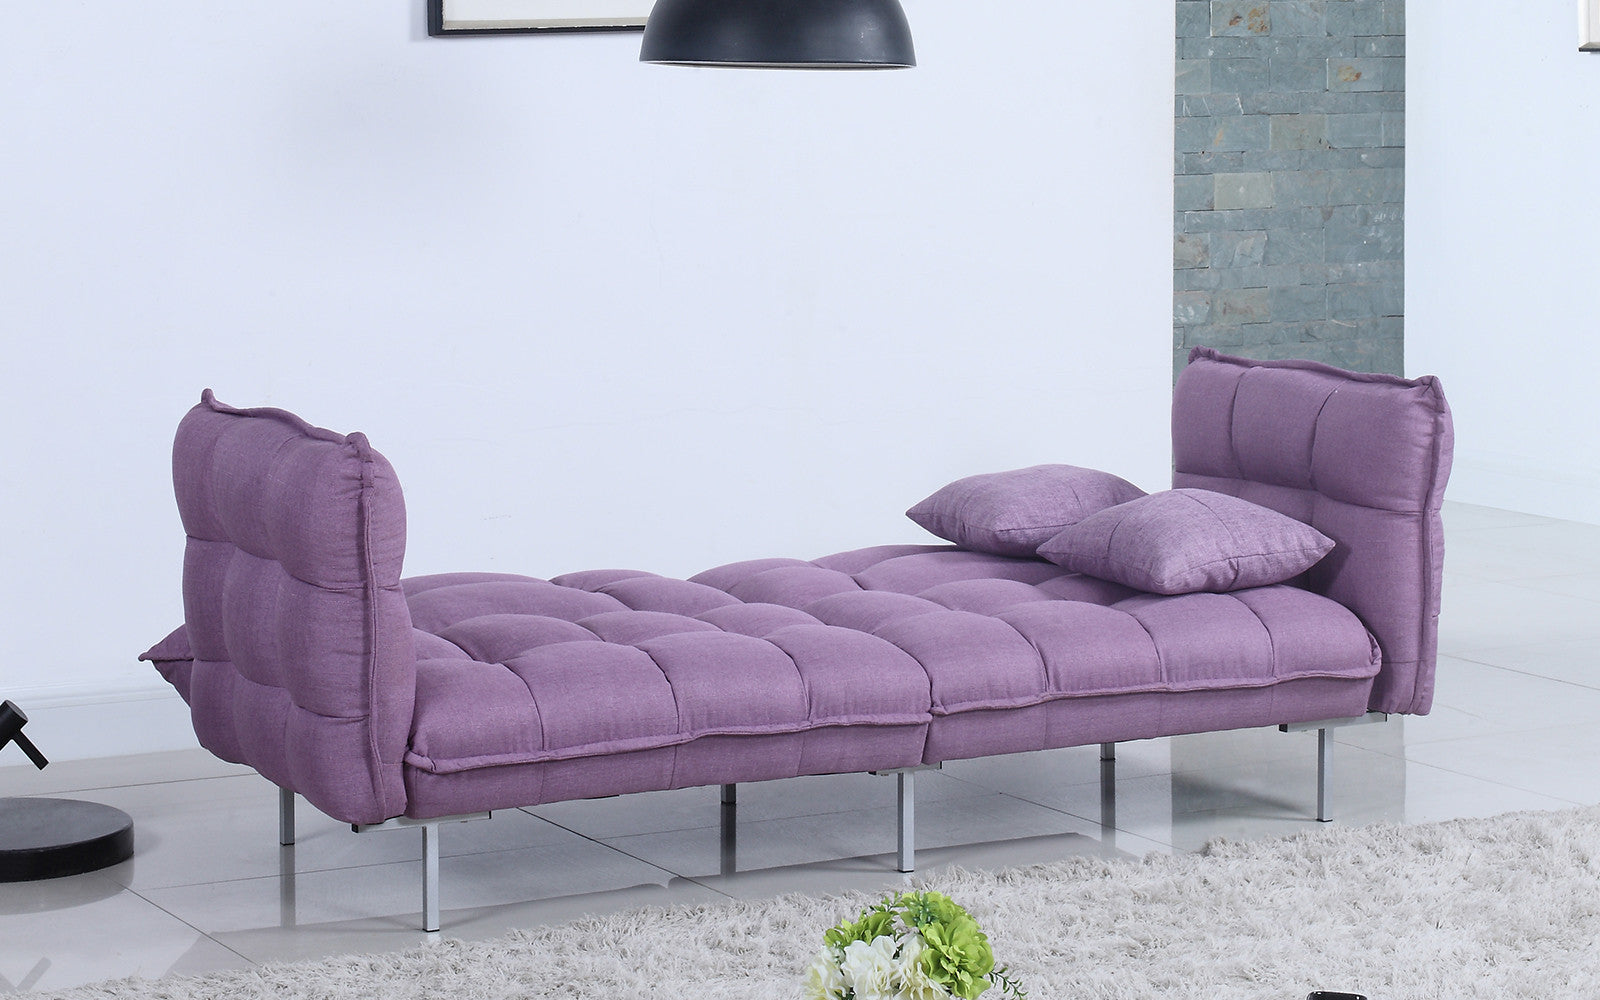 Enjoyable Scoop Funky Plush 70S Inspired Tufted Linen Futon Gmtry Best Dining Table And Chair Ideas Images Gmtryco